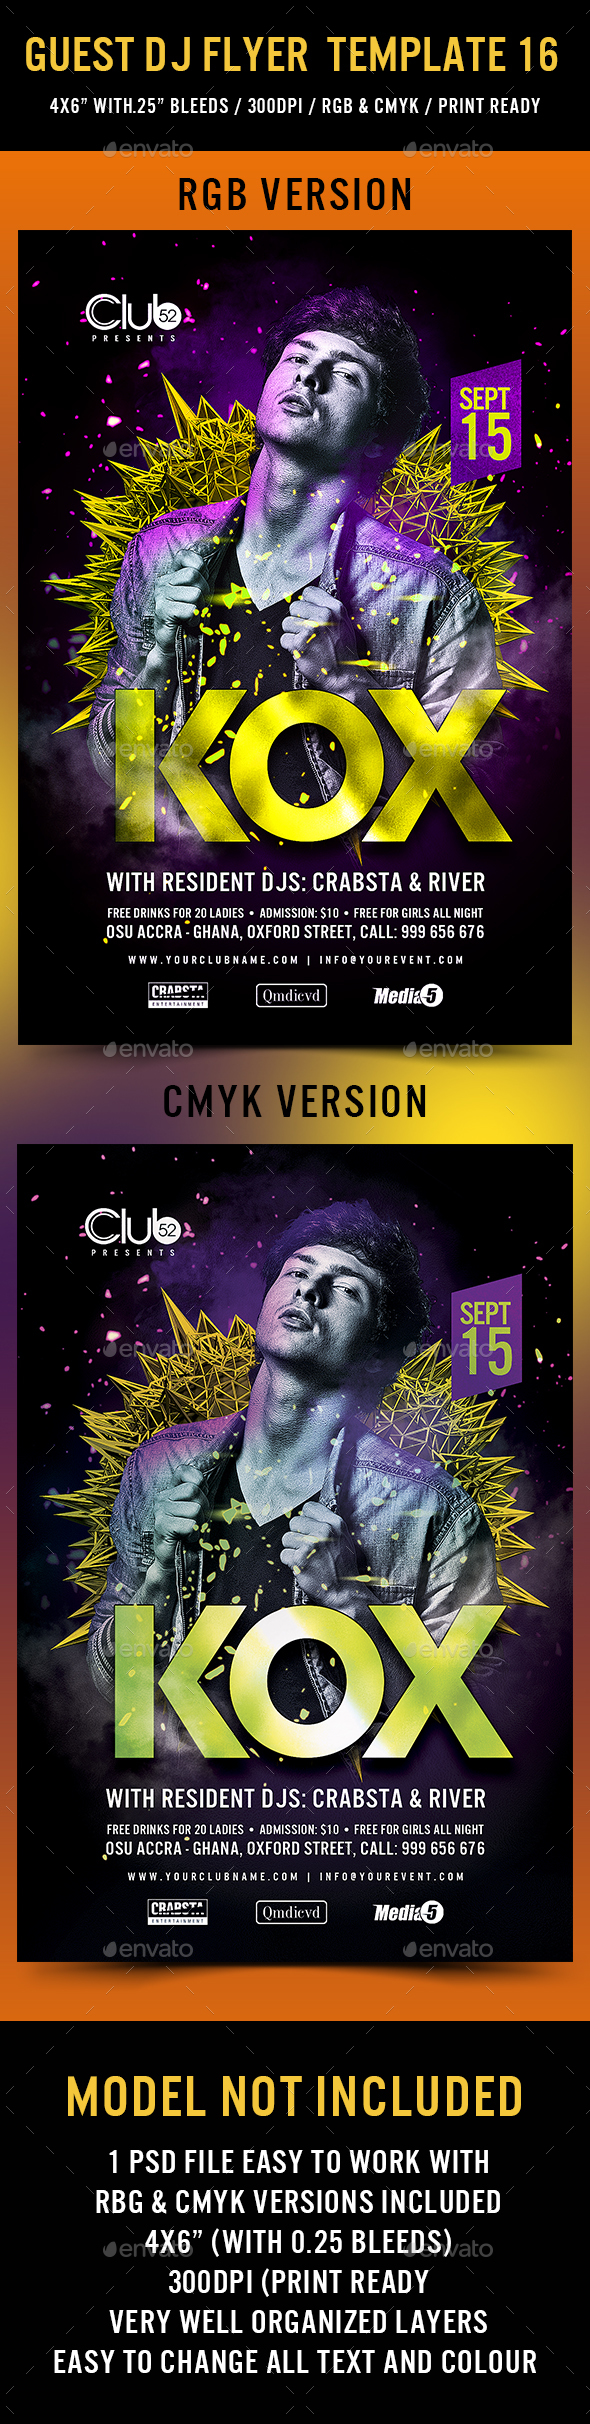 Guest DJ Flyer Template 16 - Events Flyers